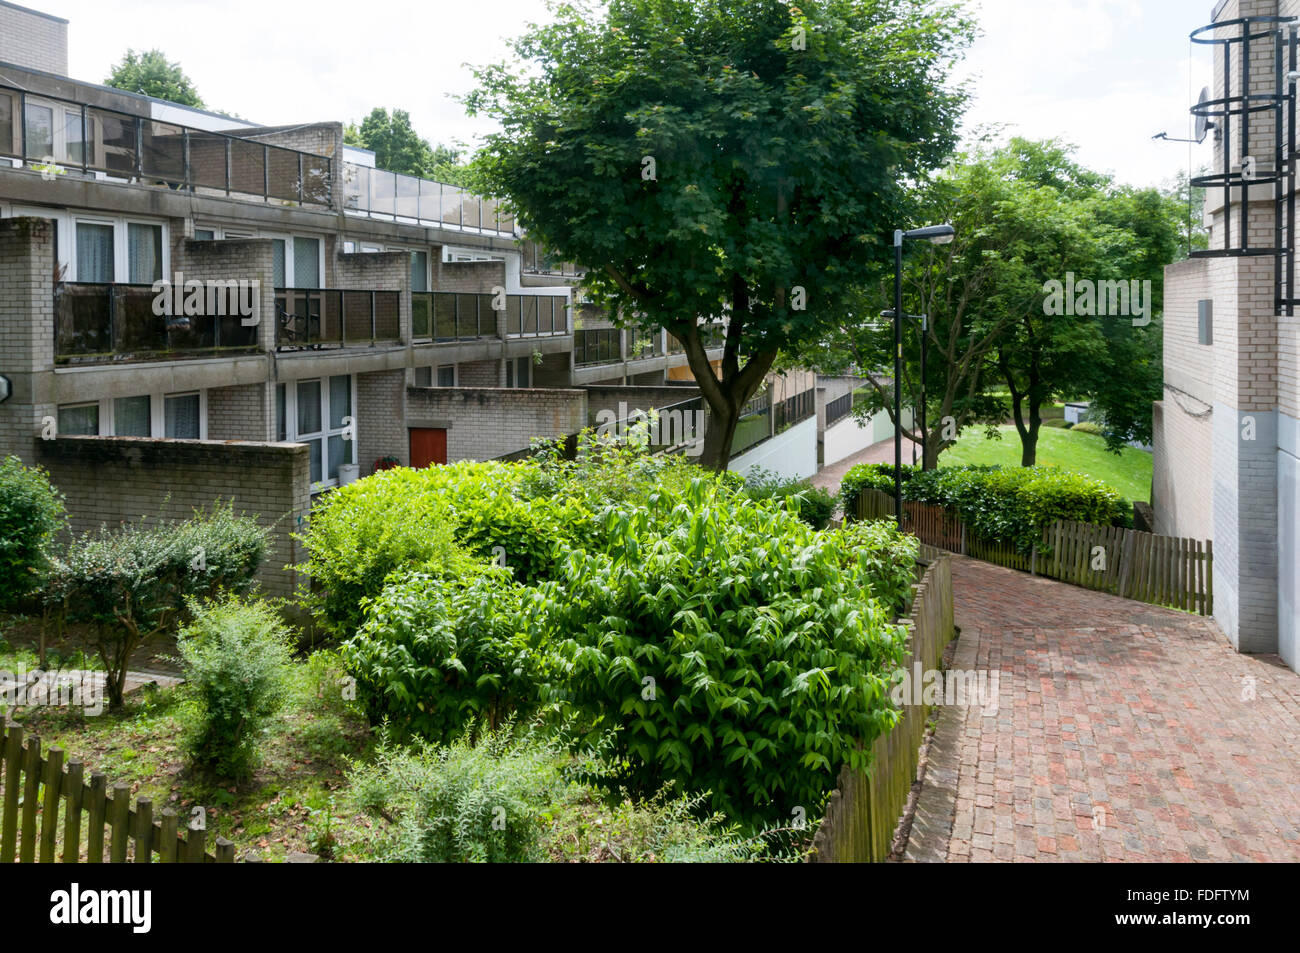 The 1960s and 1970s Central Hill Estate, Lambeth. - Stock Image